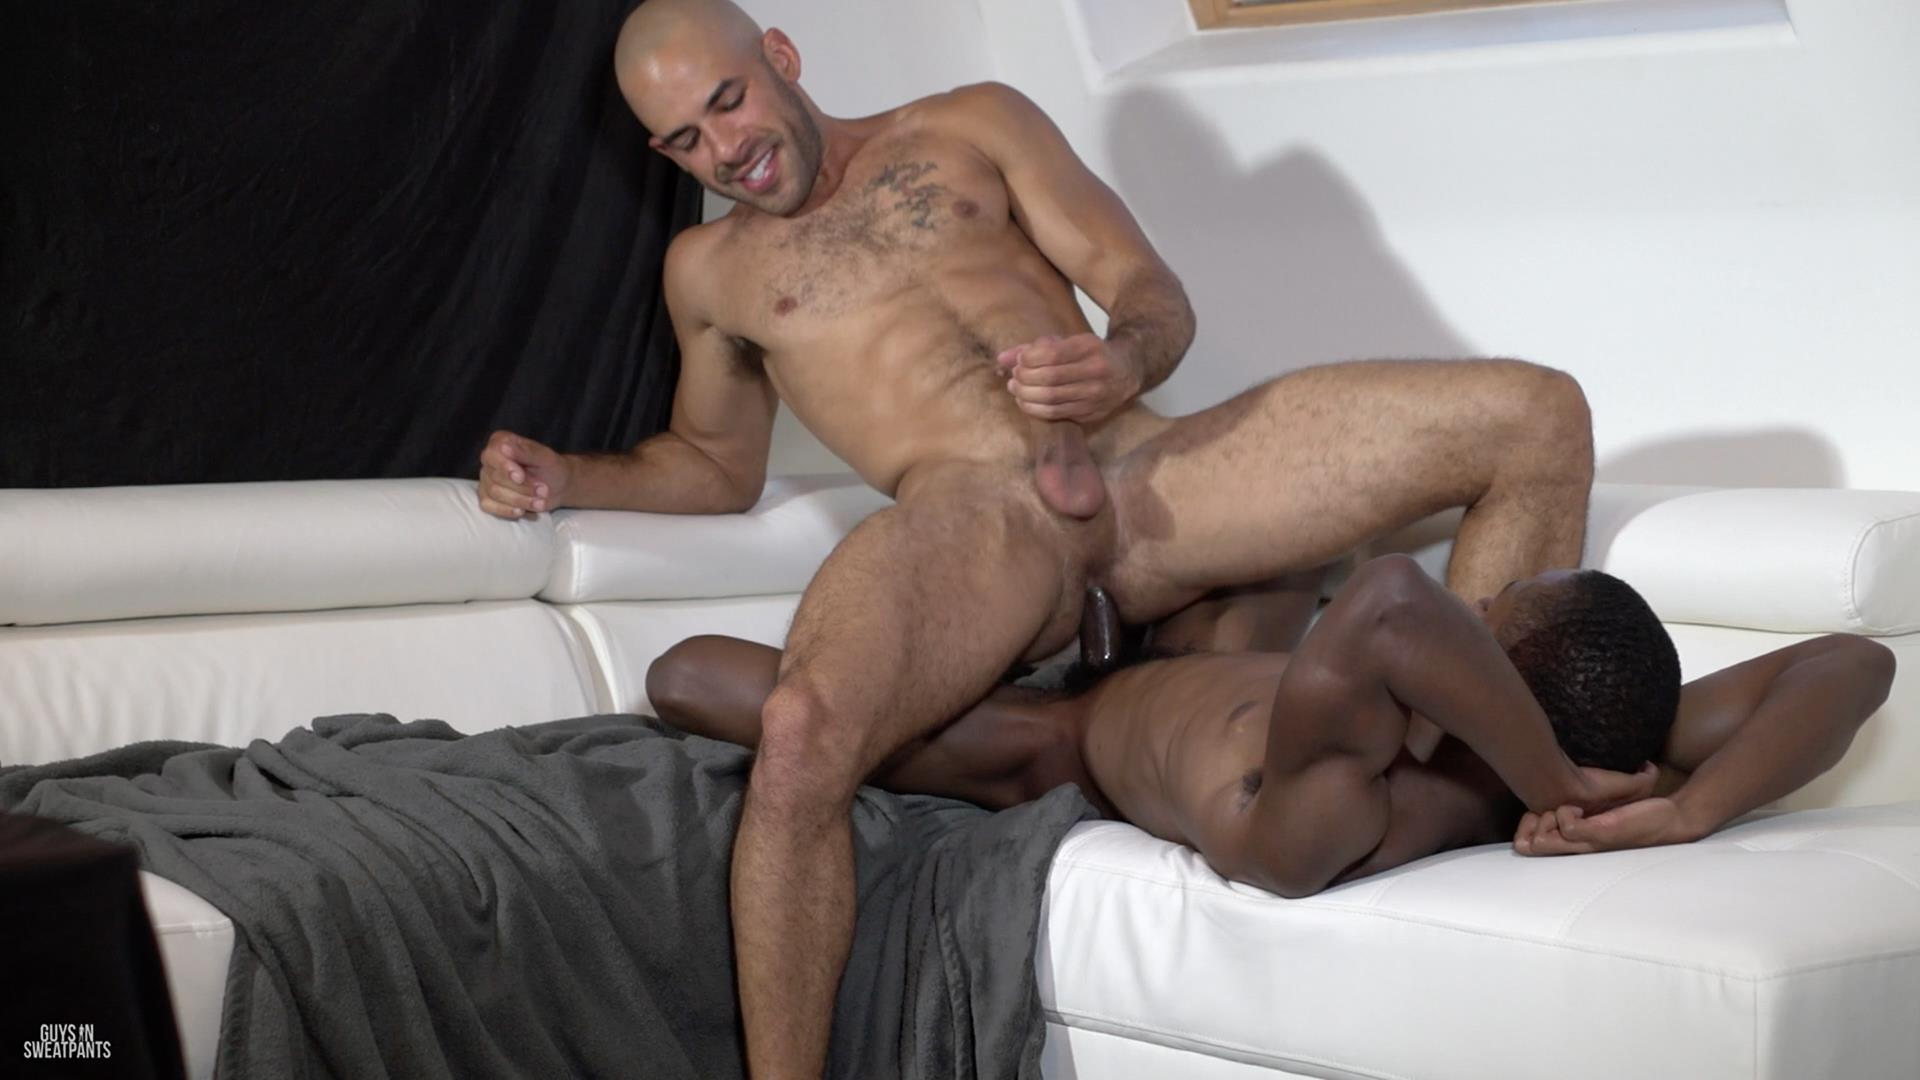 Free online gay interracial sex